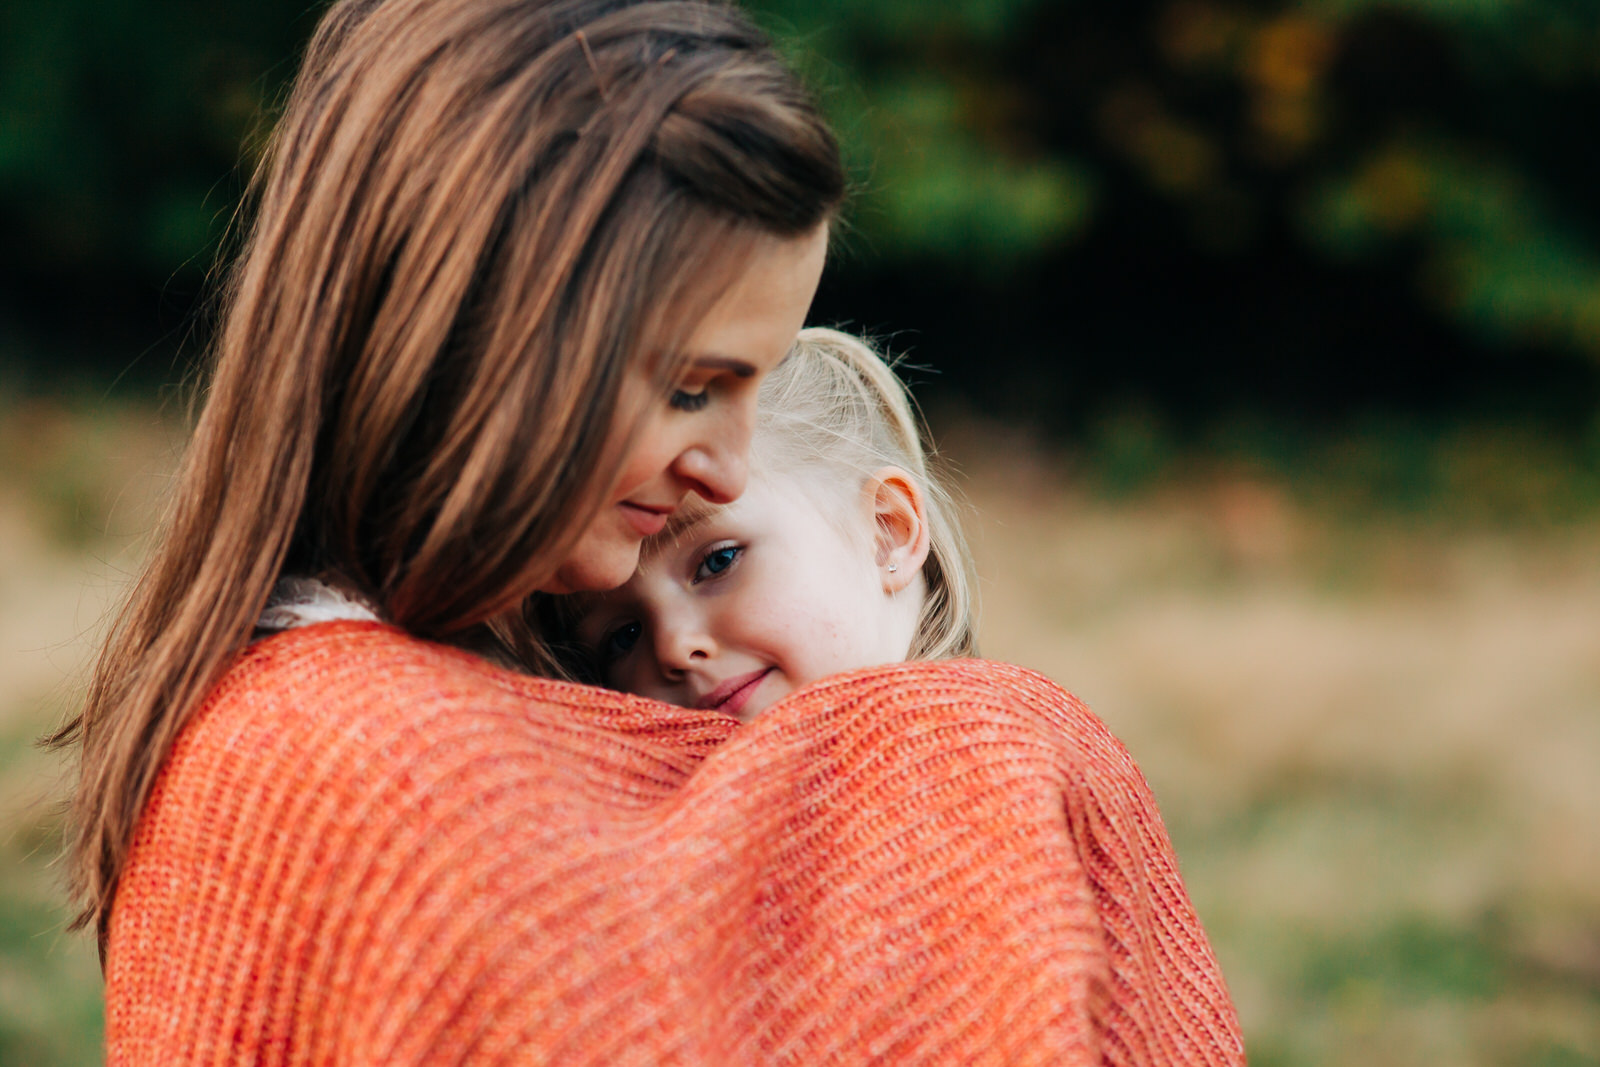 mother and daughter portraits, outdoor family photography session, West Coast photography,